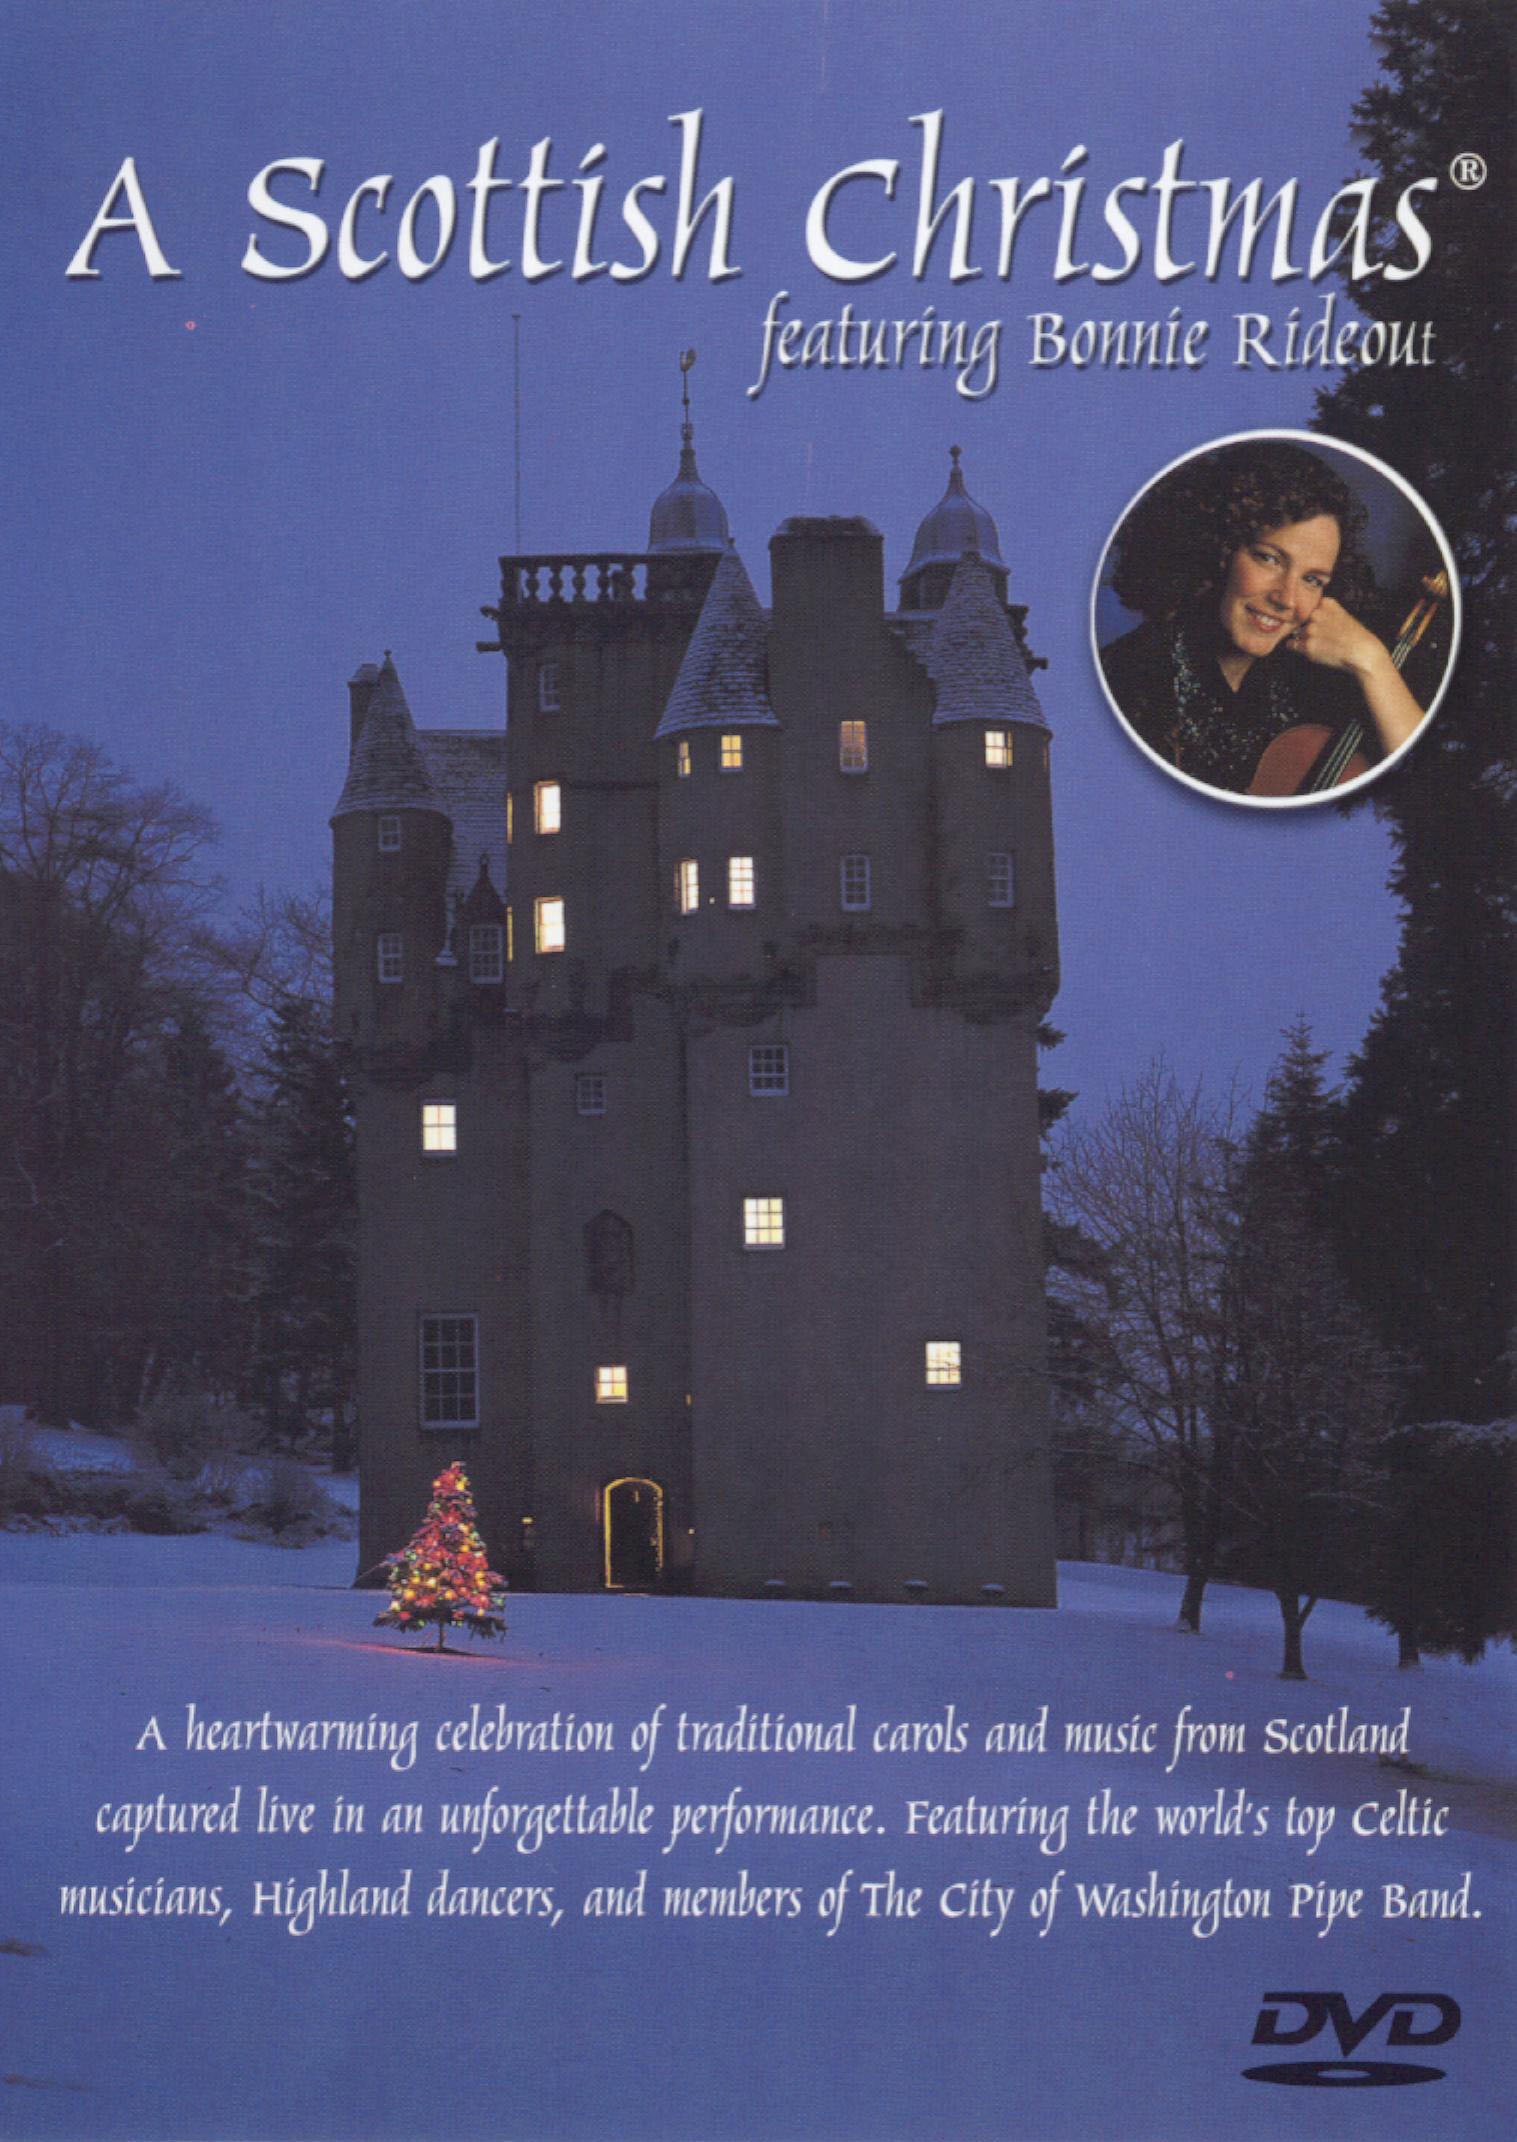 A Scottish Christmas Featuring Bonnie Rideout